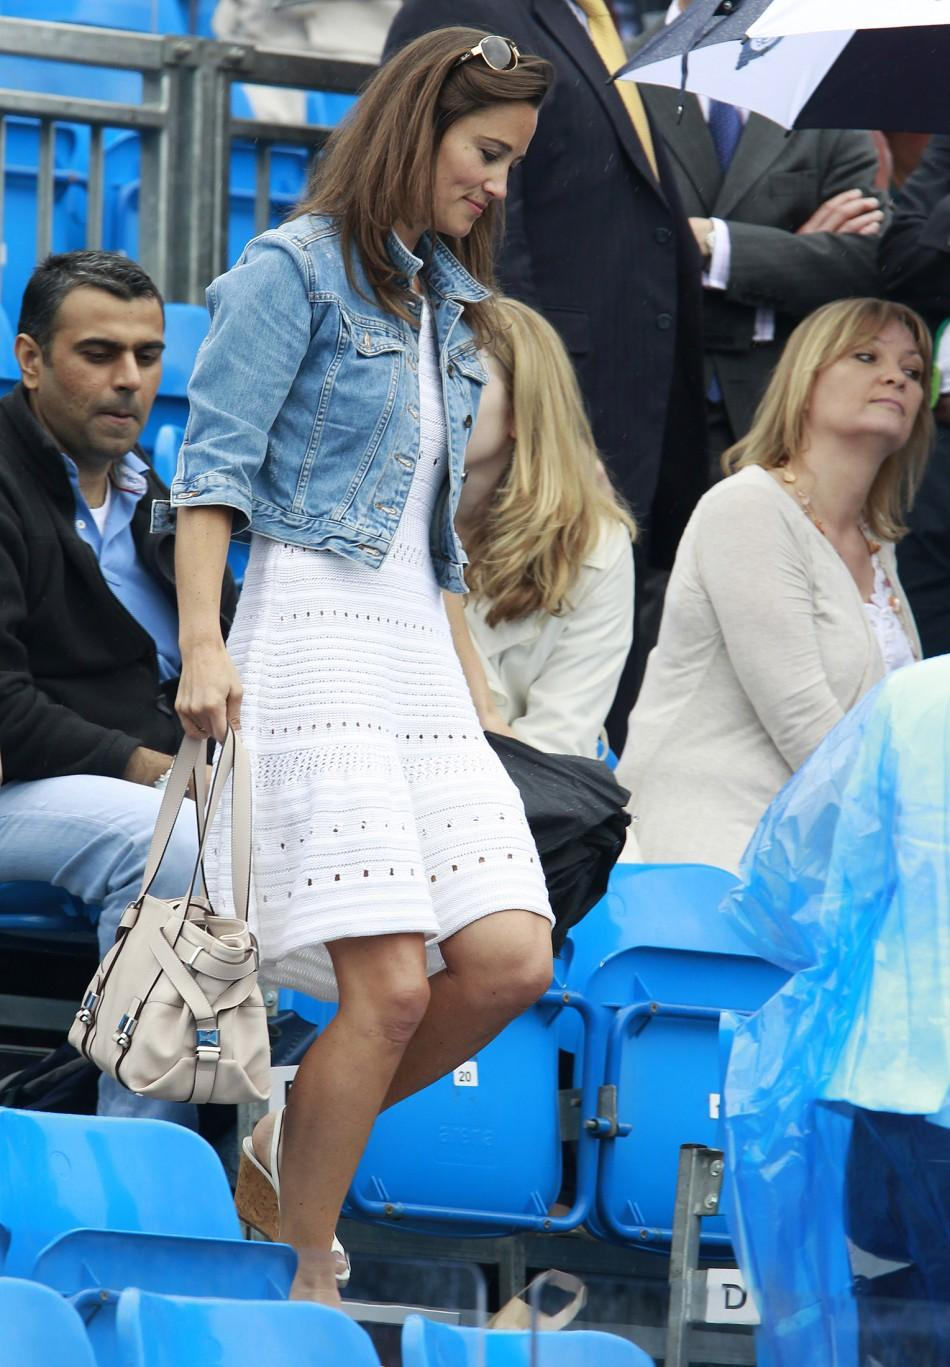 Pippa Middleton leaves the Centre Court during a rain break at the Queen's Club Championships in west London